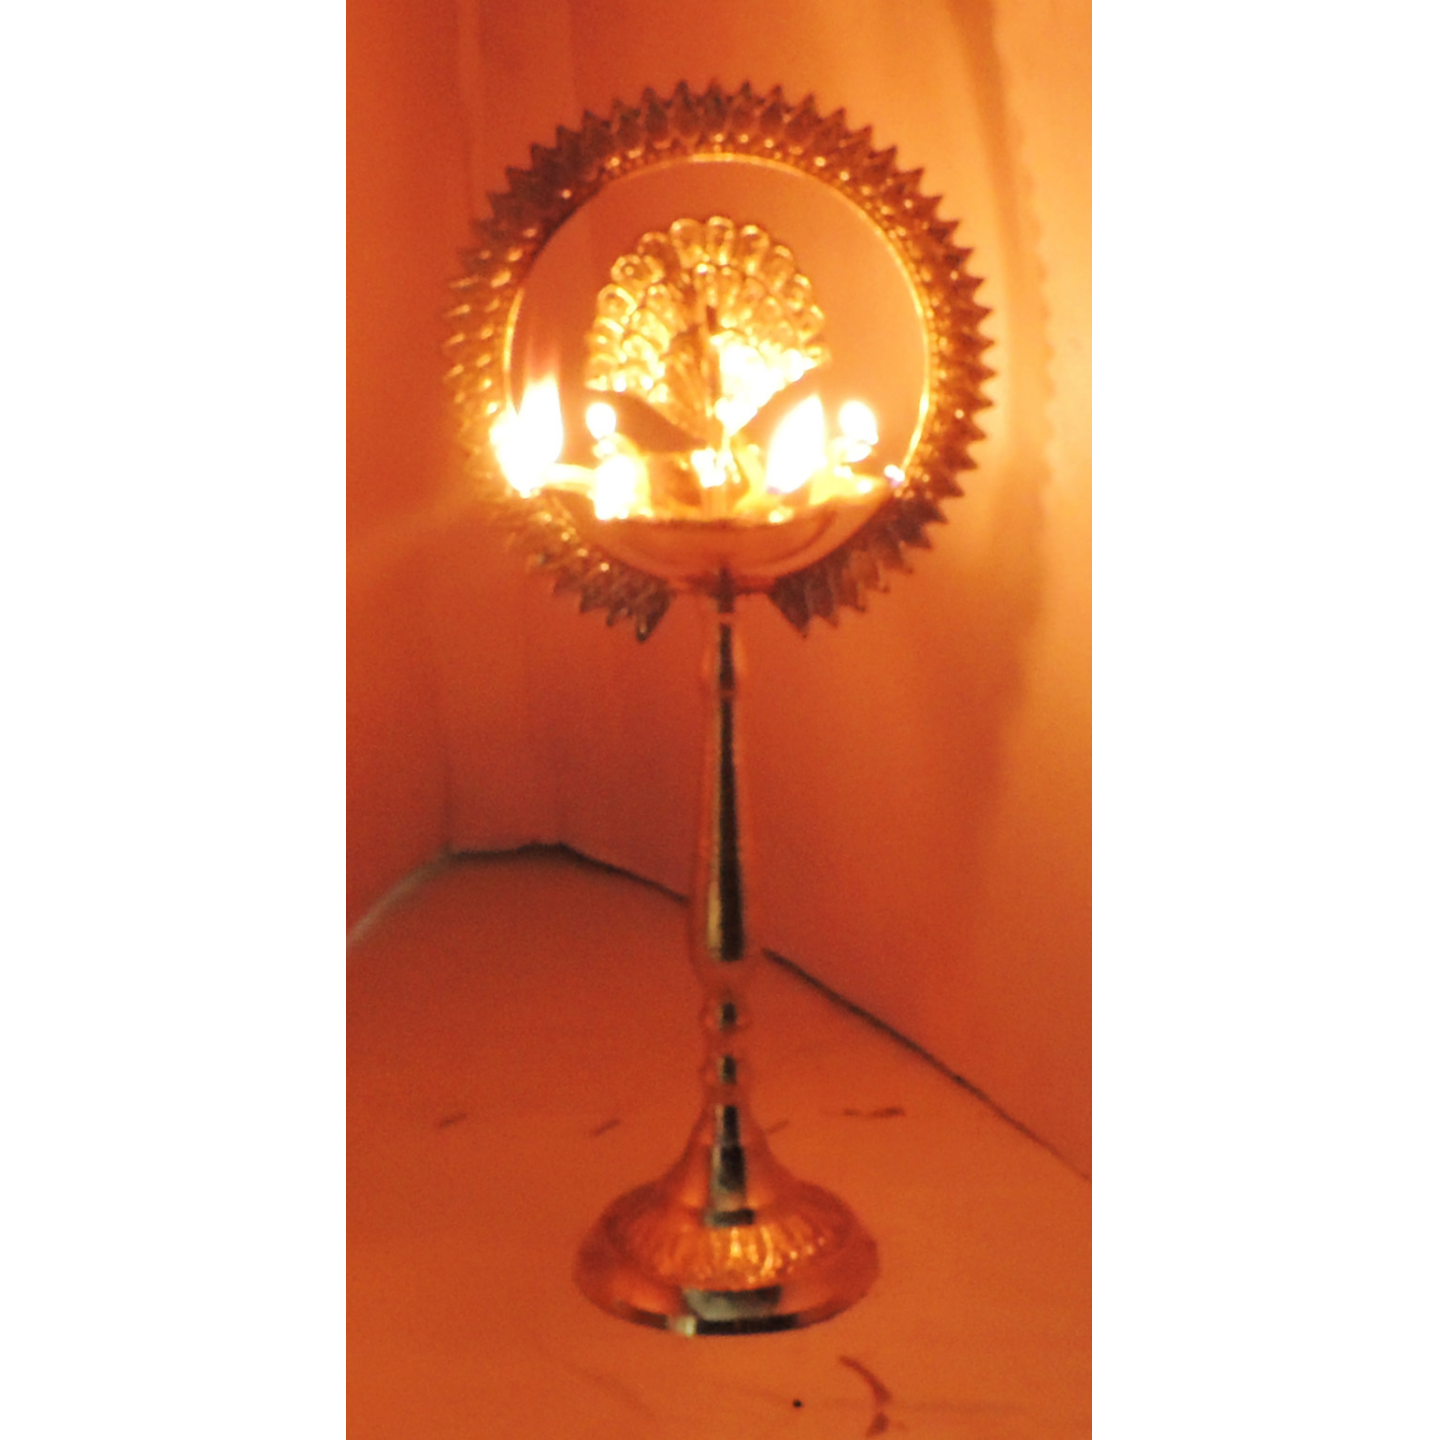 Brass Table Decor Oil Lamp Deepak With Brass Finish - Height 14.5 Inch (F656 G)